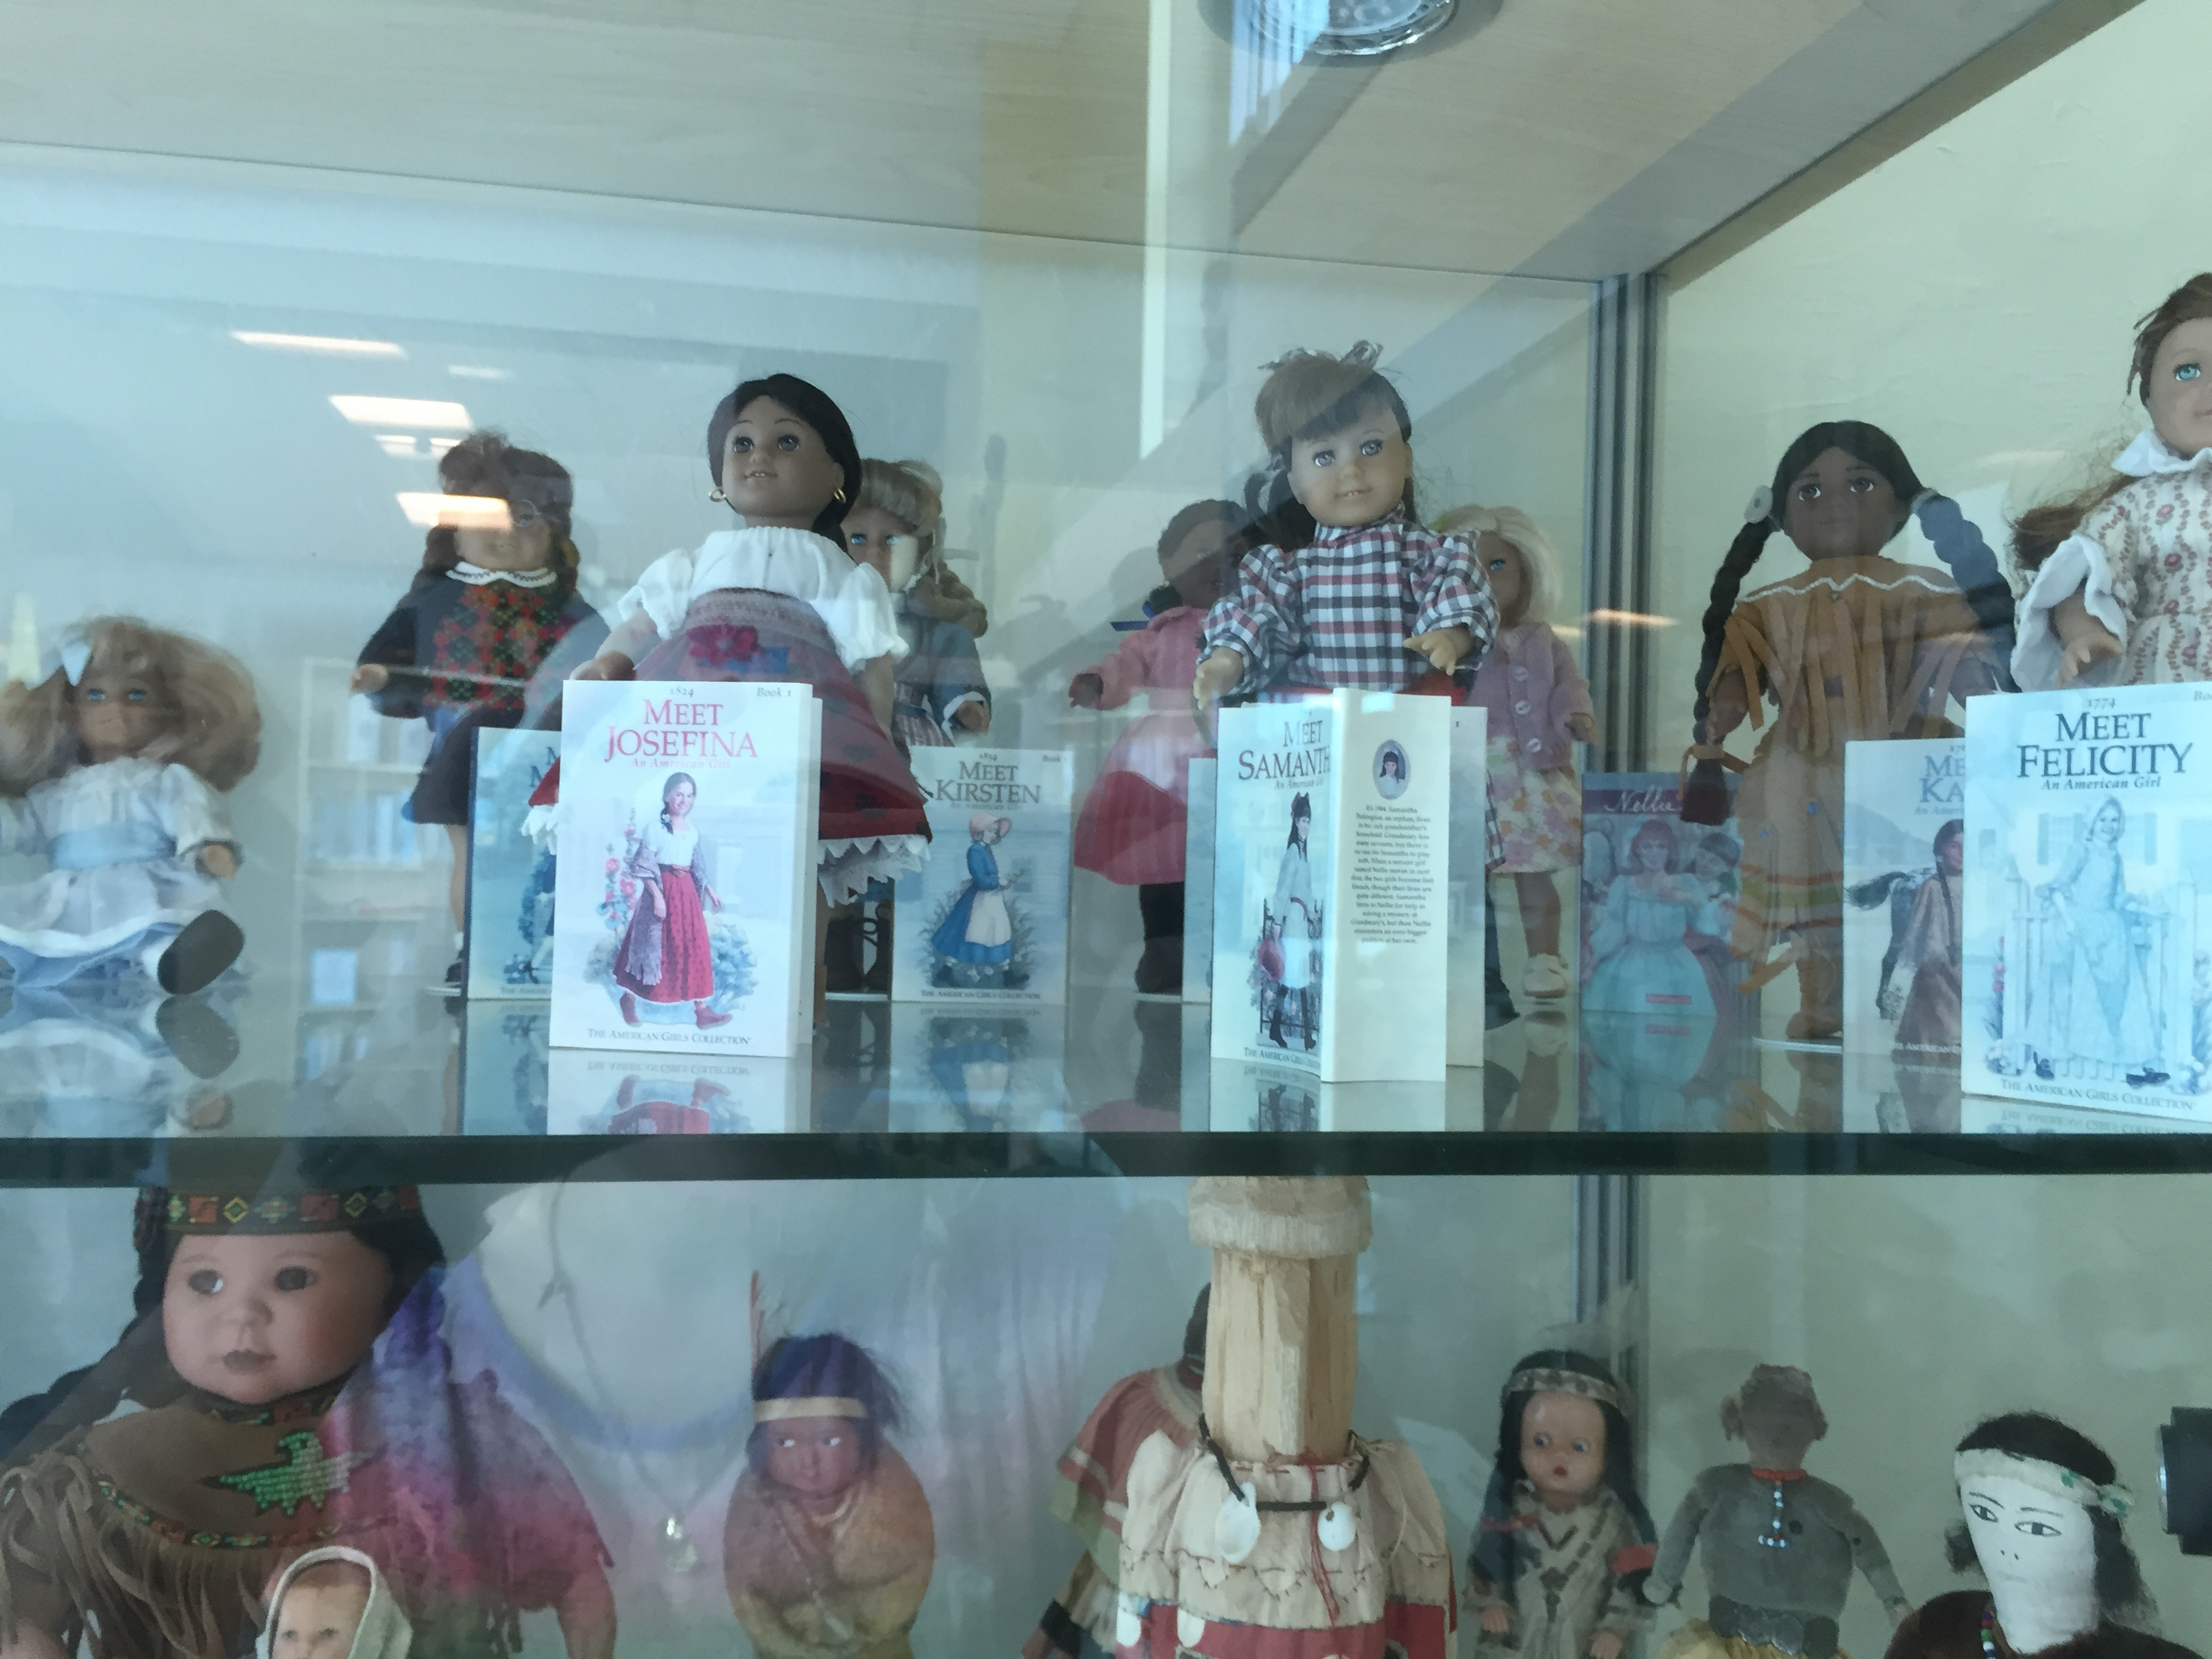 The library had a few cases with older dolls on it. I came across these American Girl mini dolls. I'm not totally sure, but I think they are Pleasant Company.